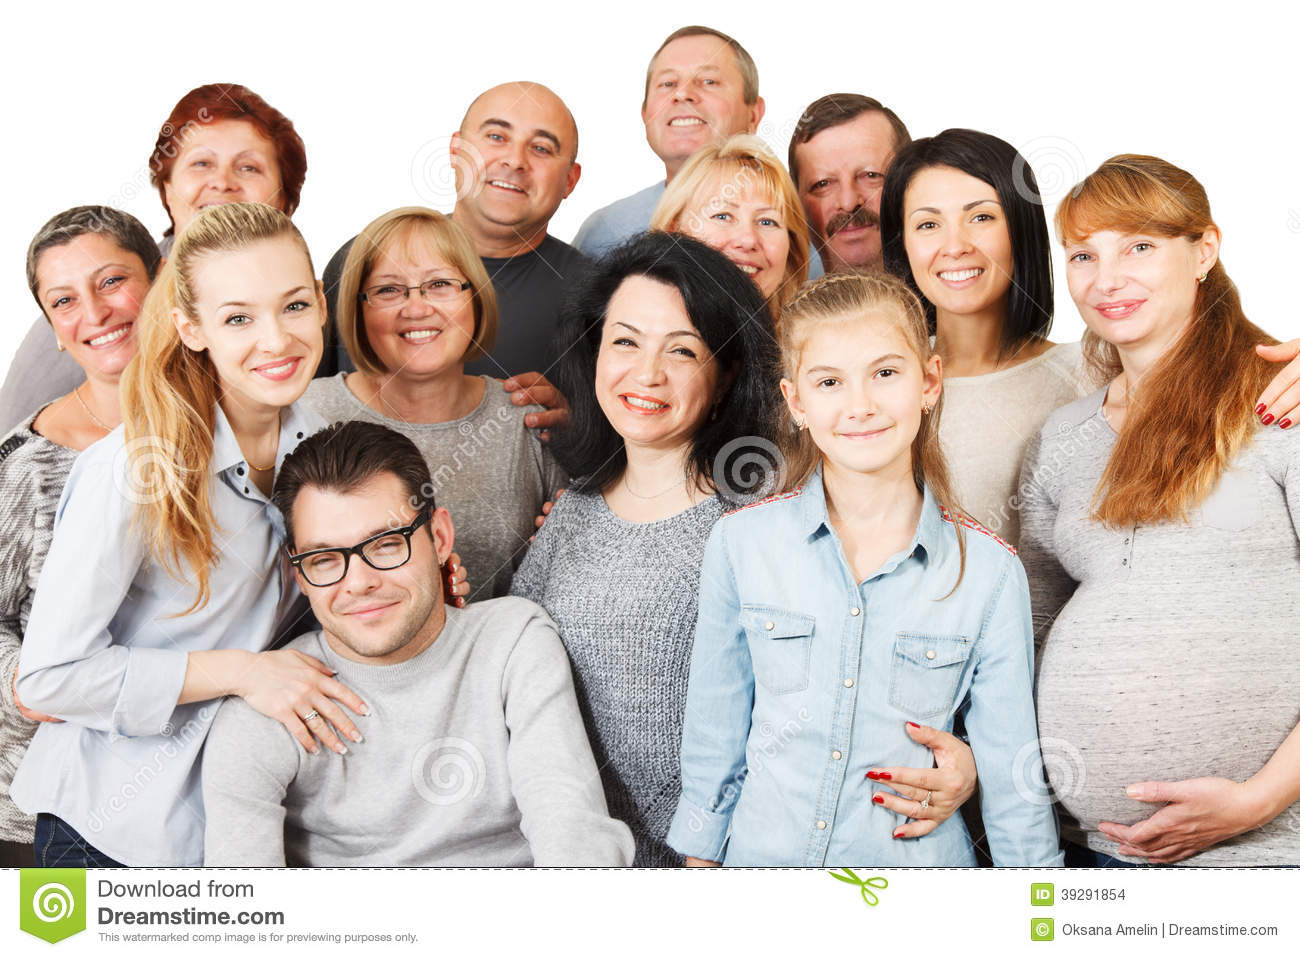 age mixed together diversity generation embracing smiling happy multi portrait standing familiale famille institution vita familia nza socios voor ssk